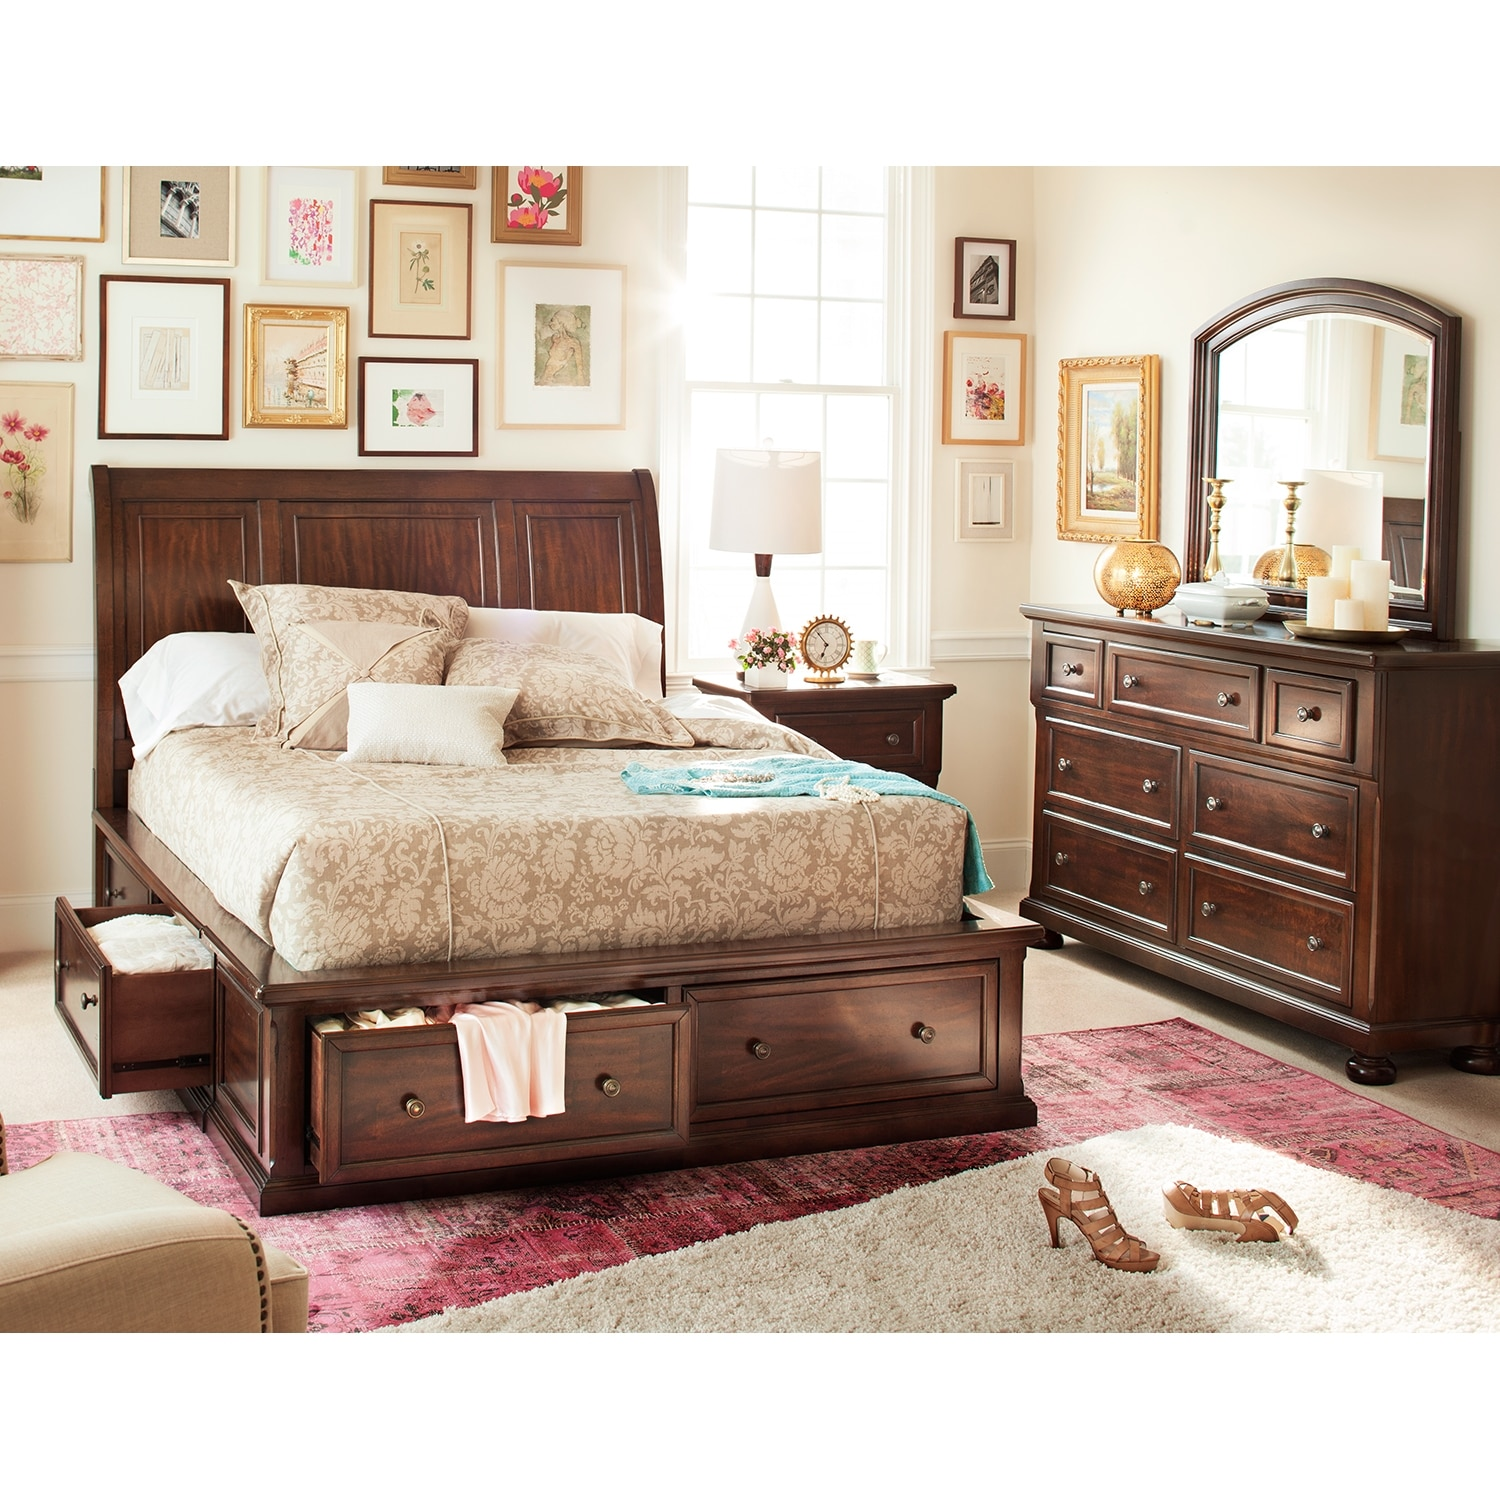 Image of: King Storage Beds Ideas